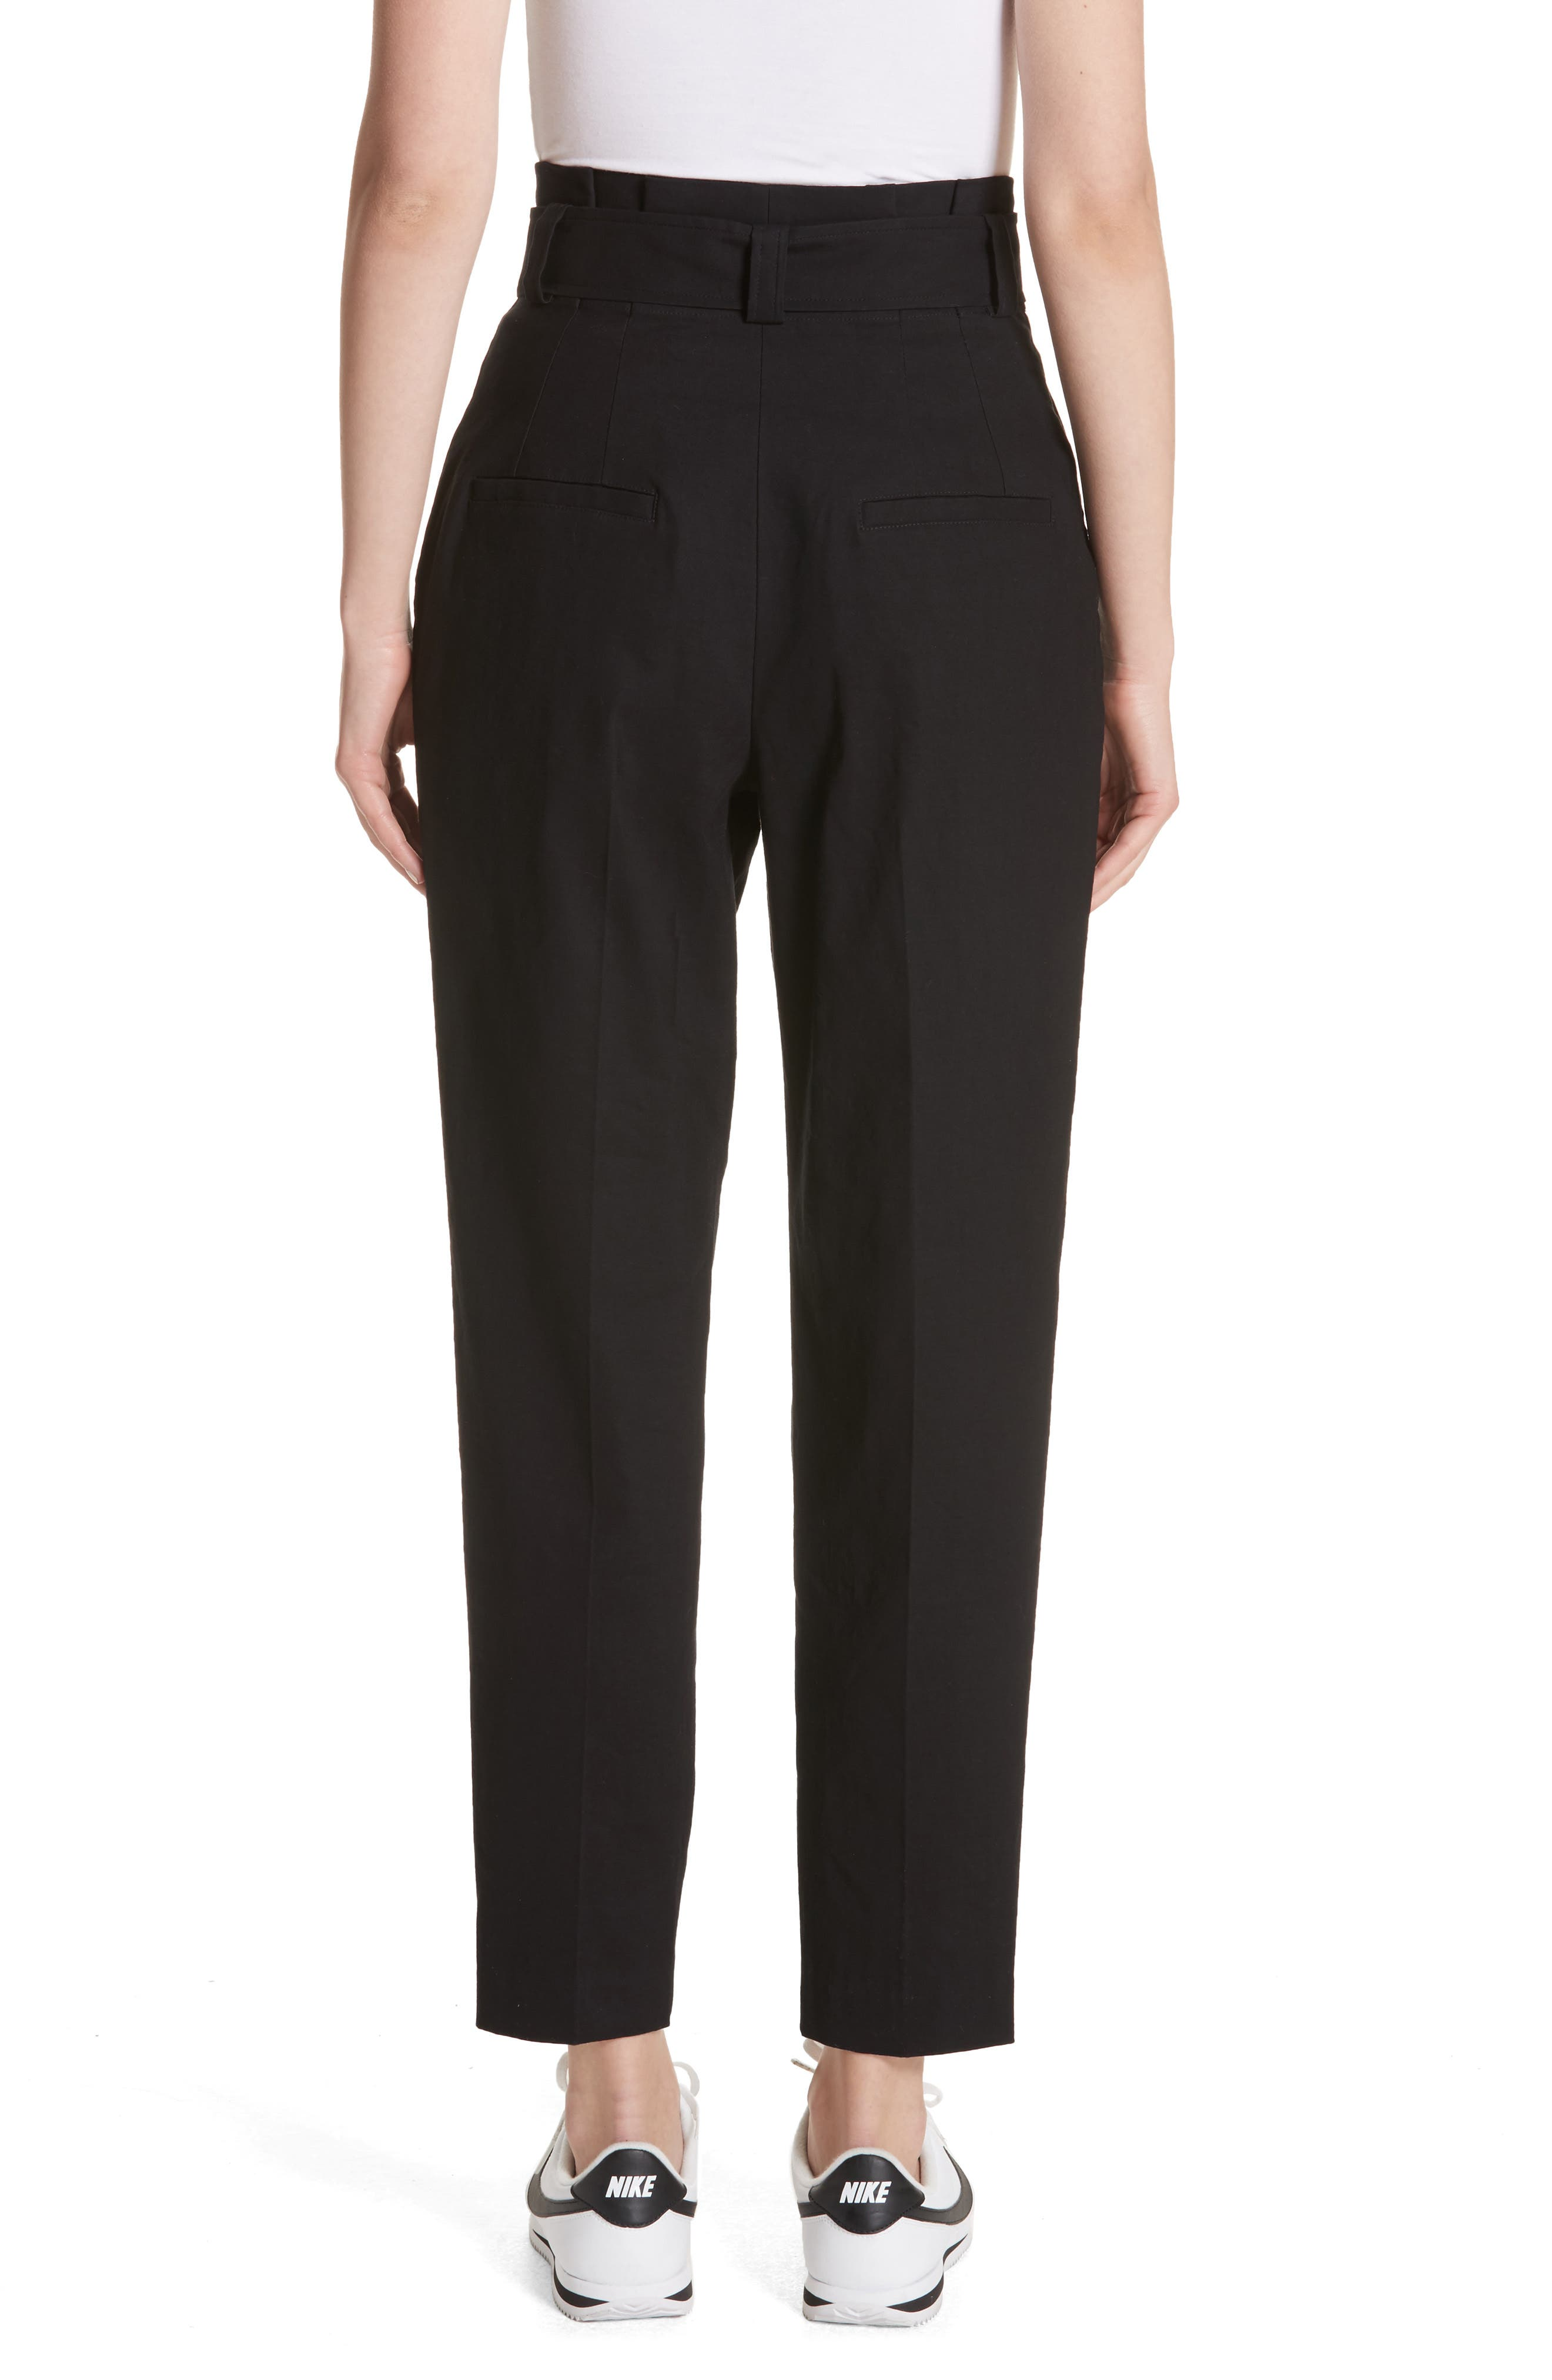 Diego High Waist Pants,                             Alternate thumbnail 2, color,                             Black